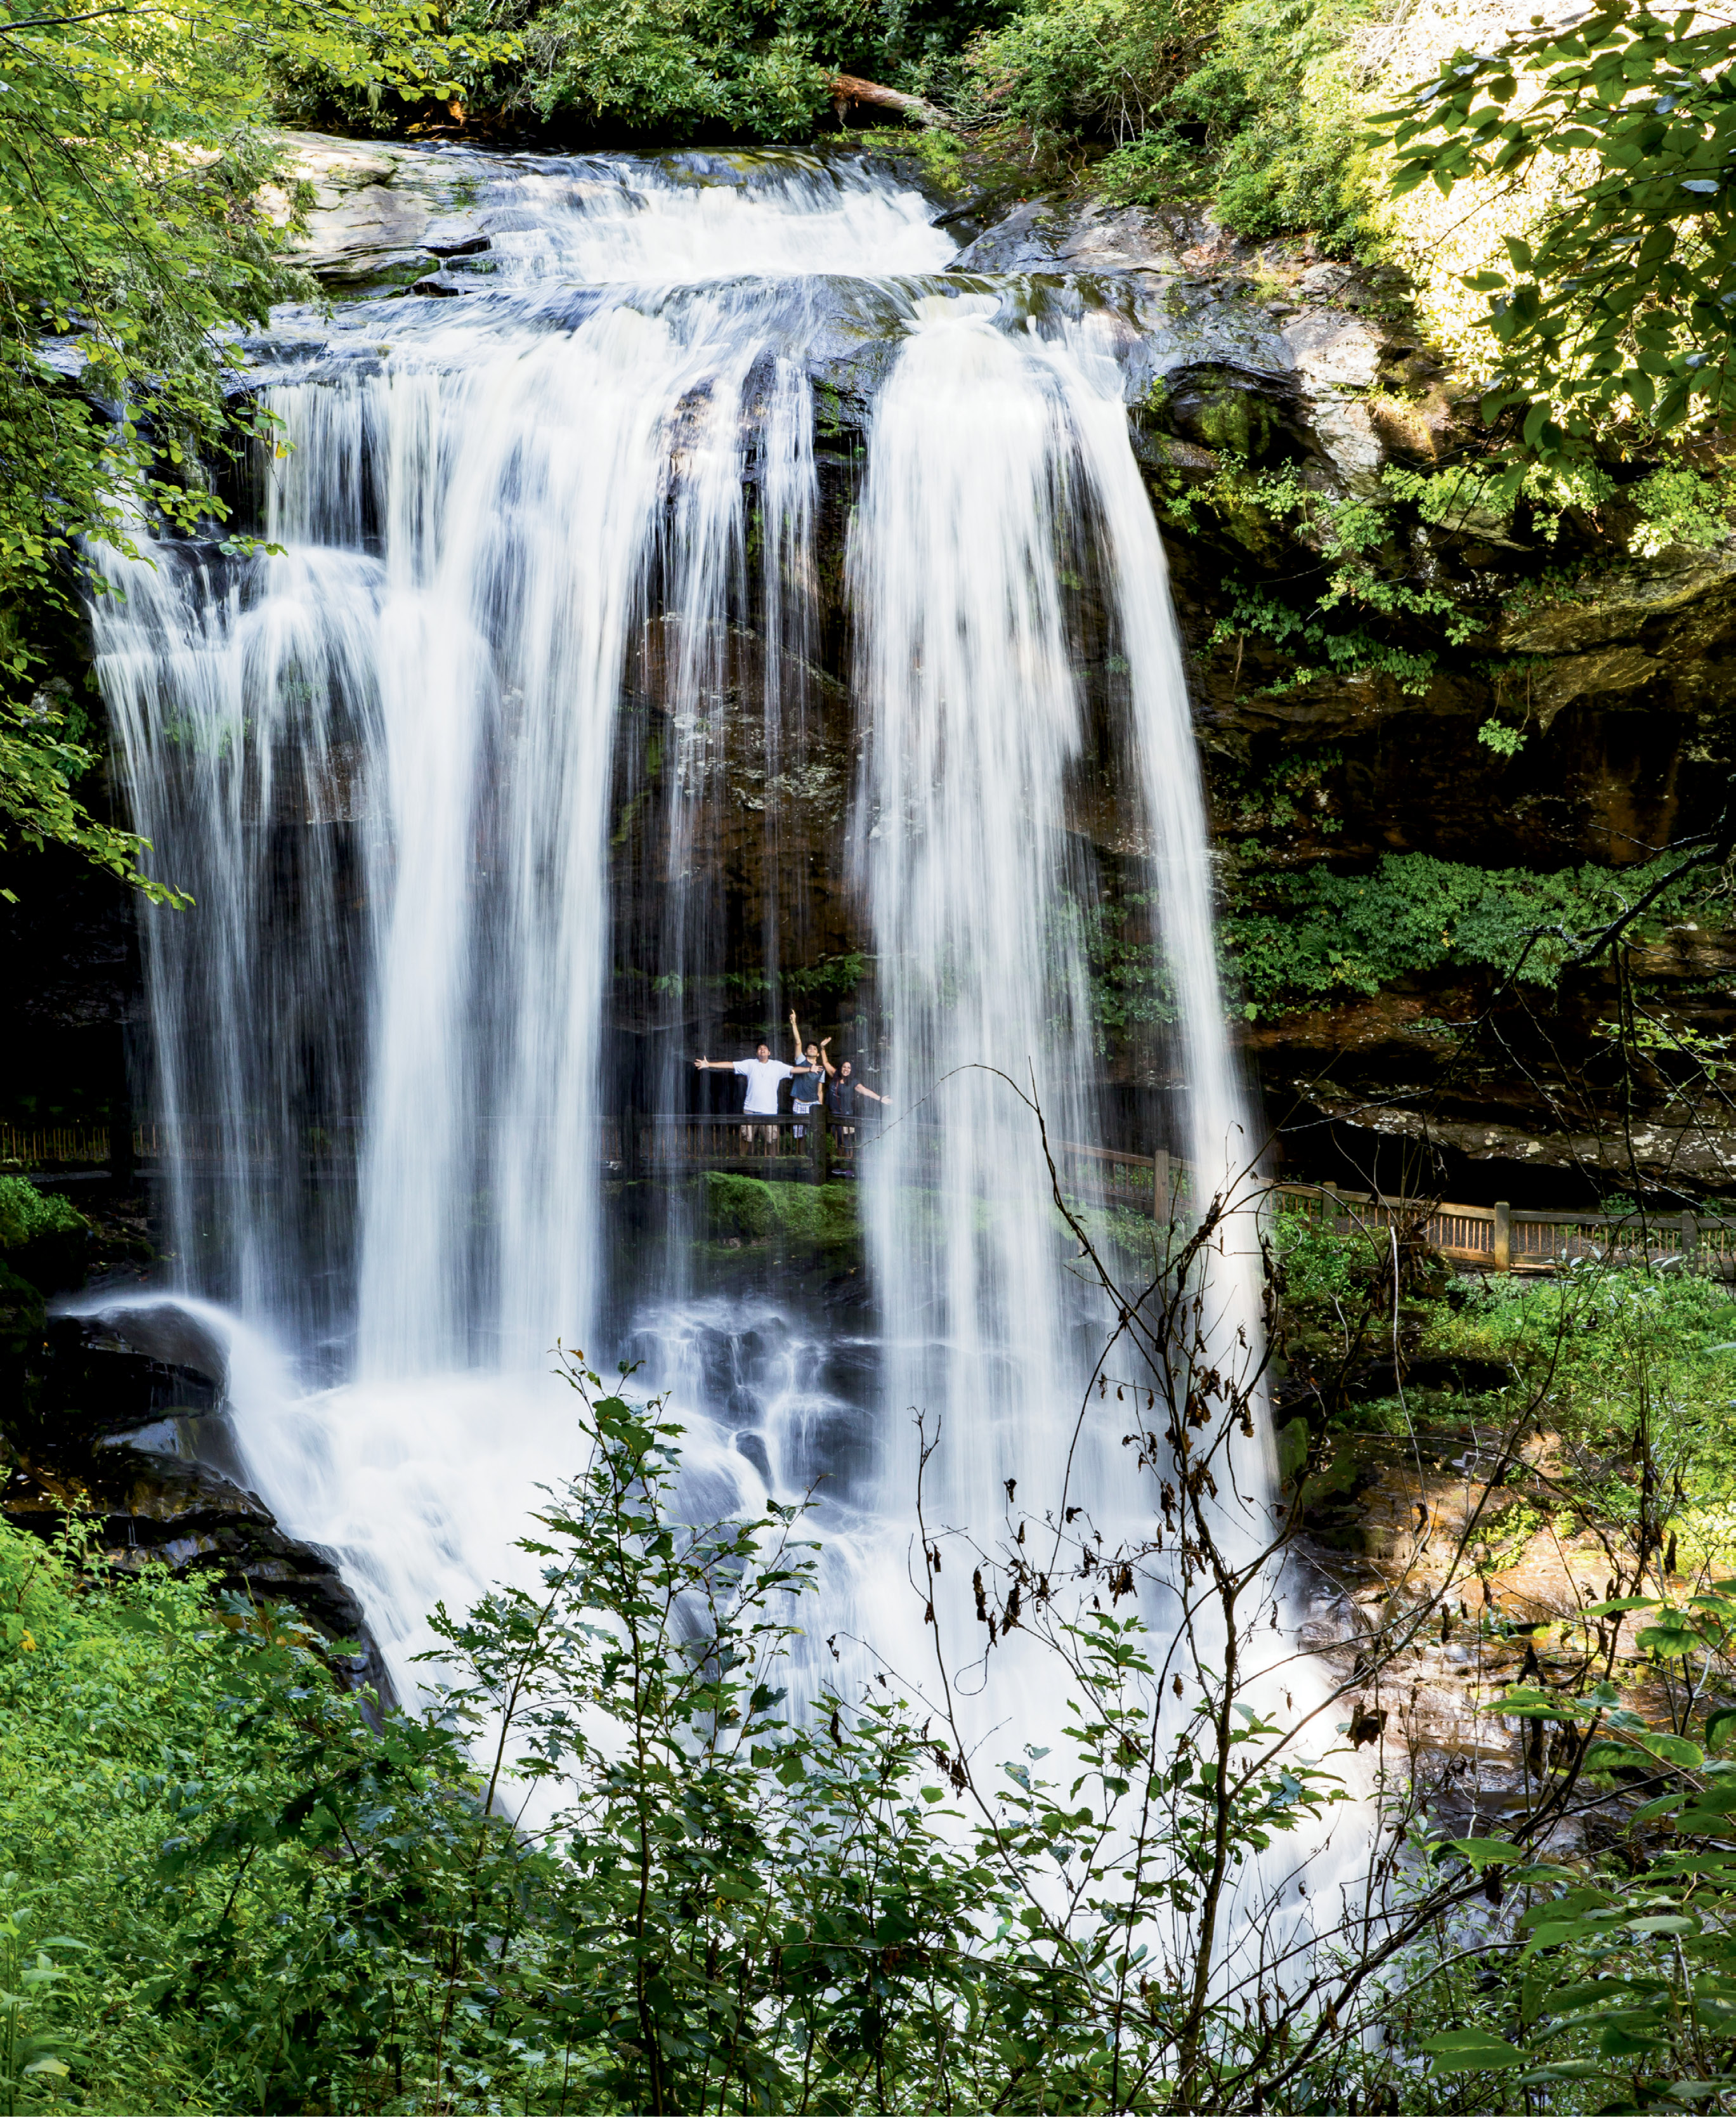 Within four miles of downtown, in the Nantahala National Forest, visitors can walk on a stone path behind Dry Falls and stay (mostly) out of the spray.